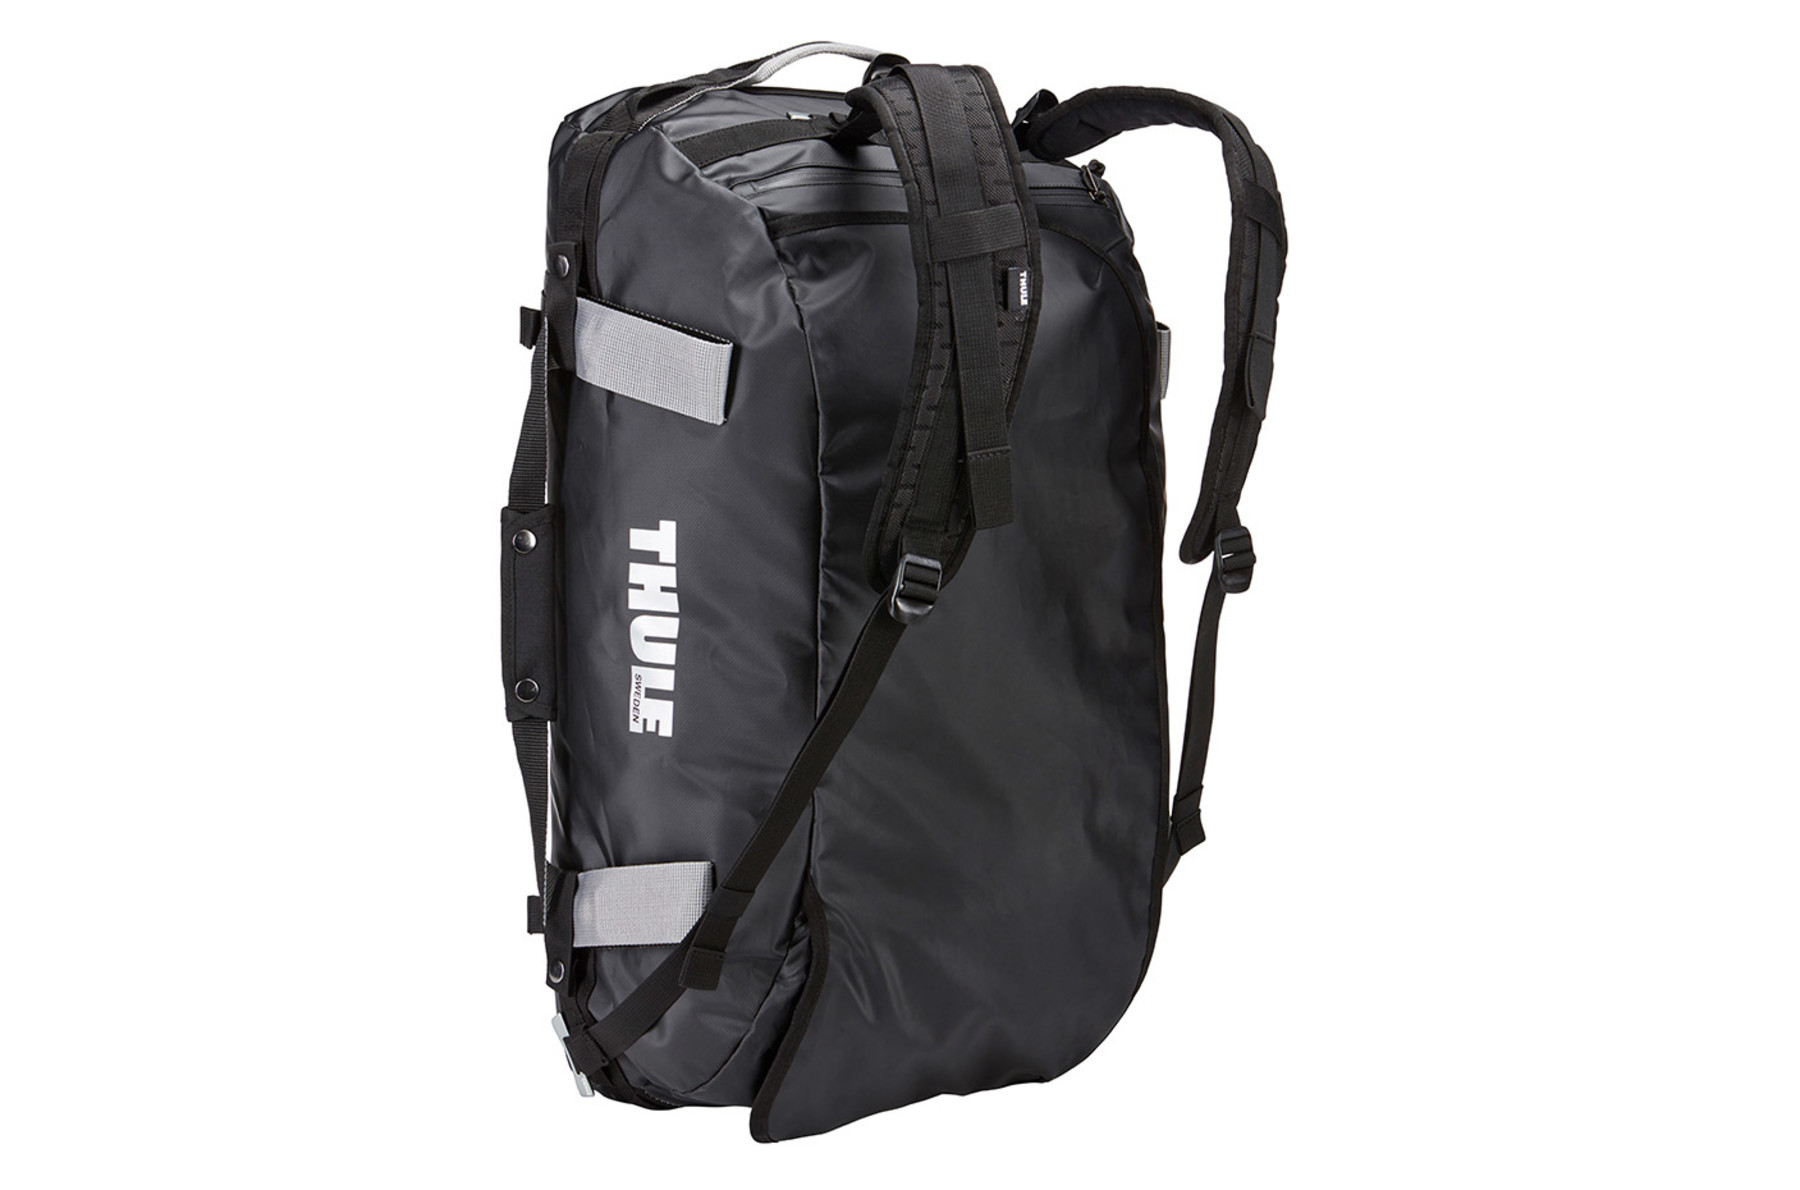 e7f114b557e4 Can be carried in two different ways: as a backpack and as a duffel (all  straps tuck away when not in use)